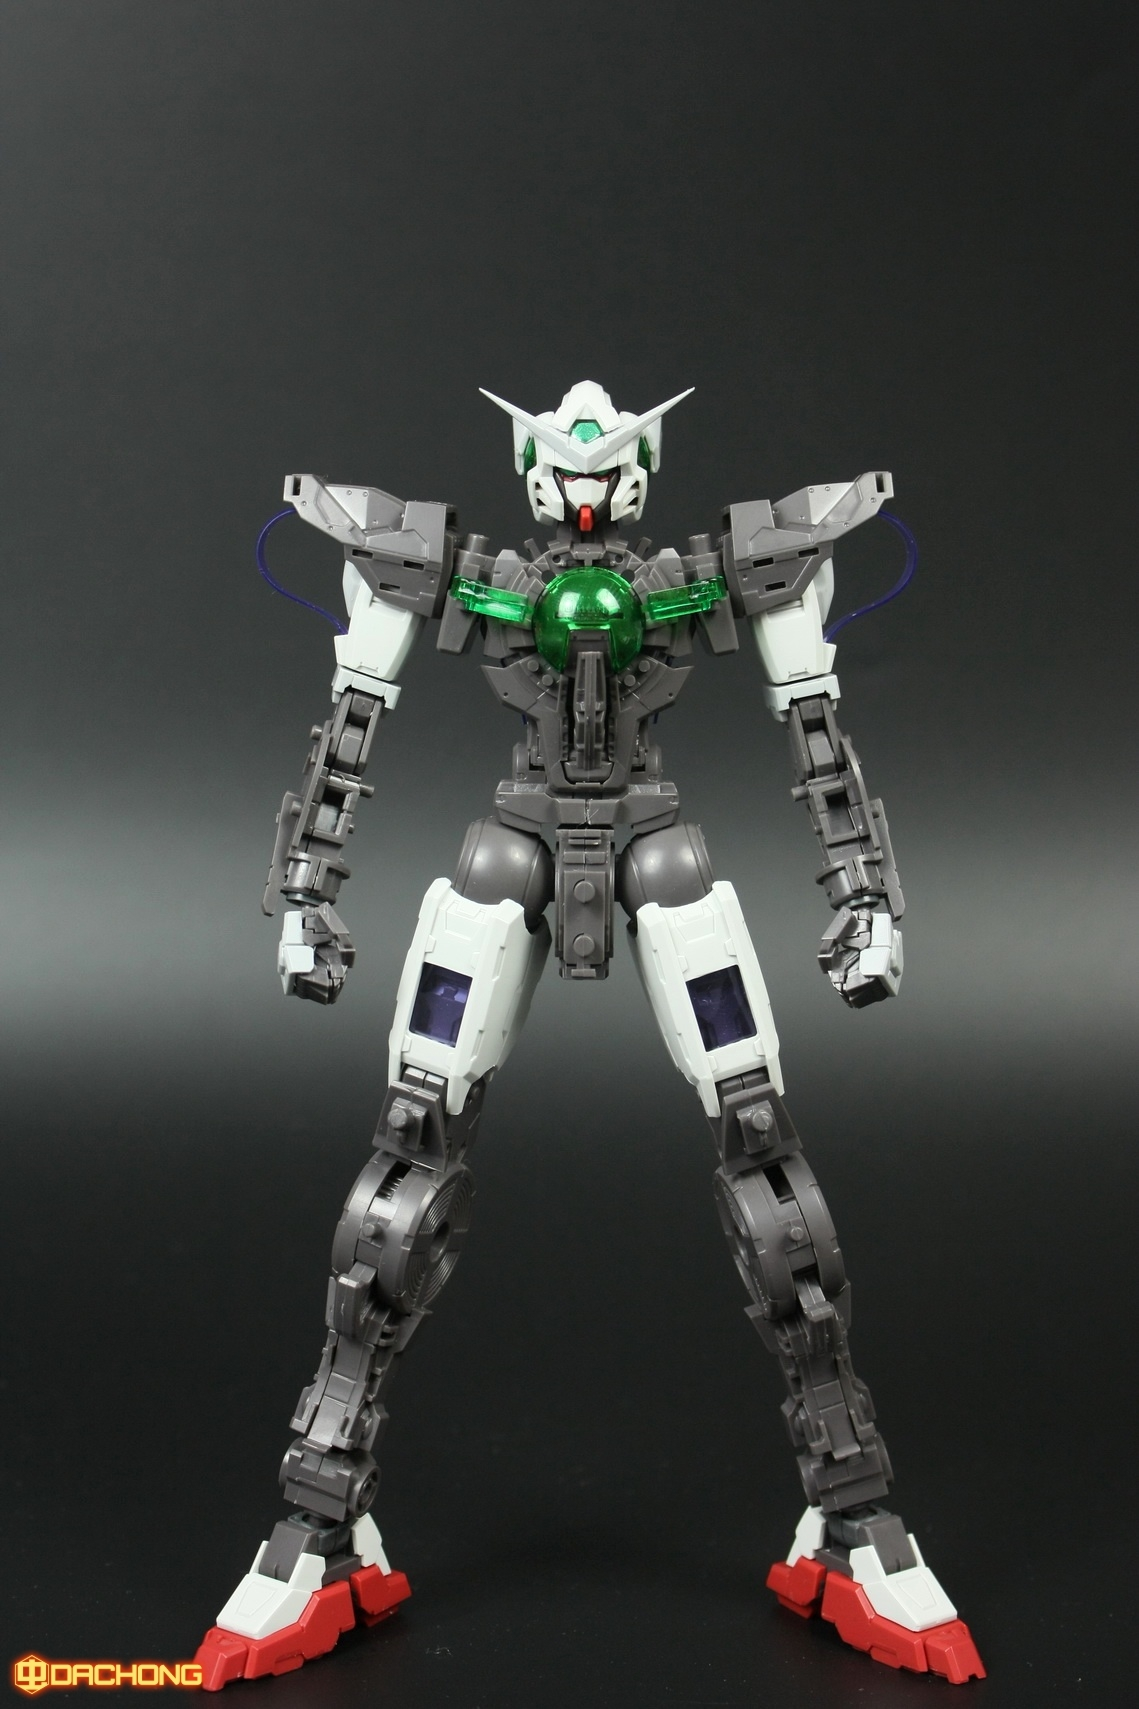 S254_MG_exia_HS_review_inask_039.jpg